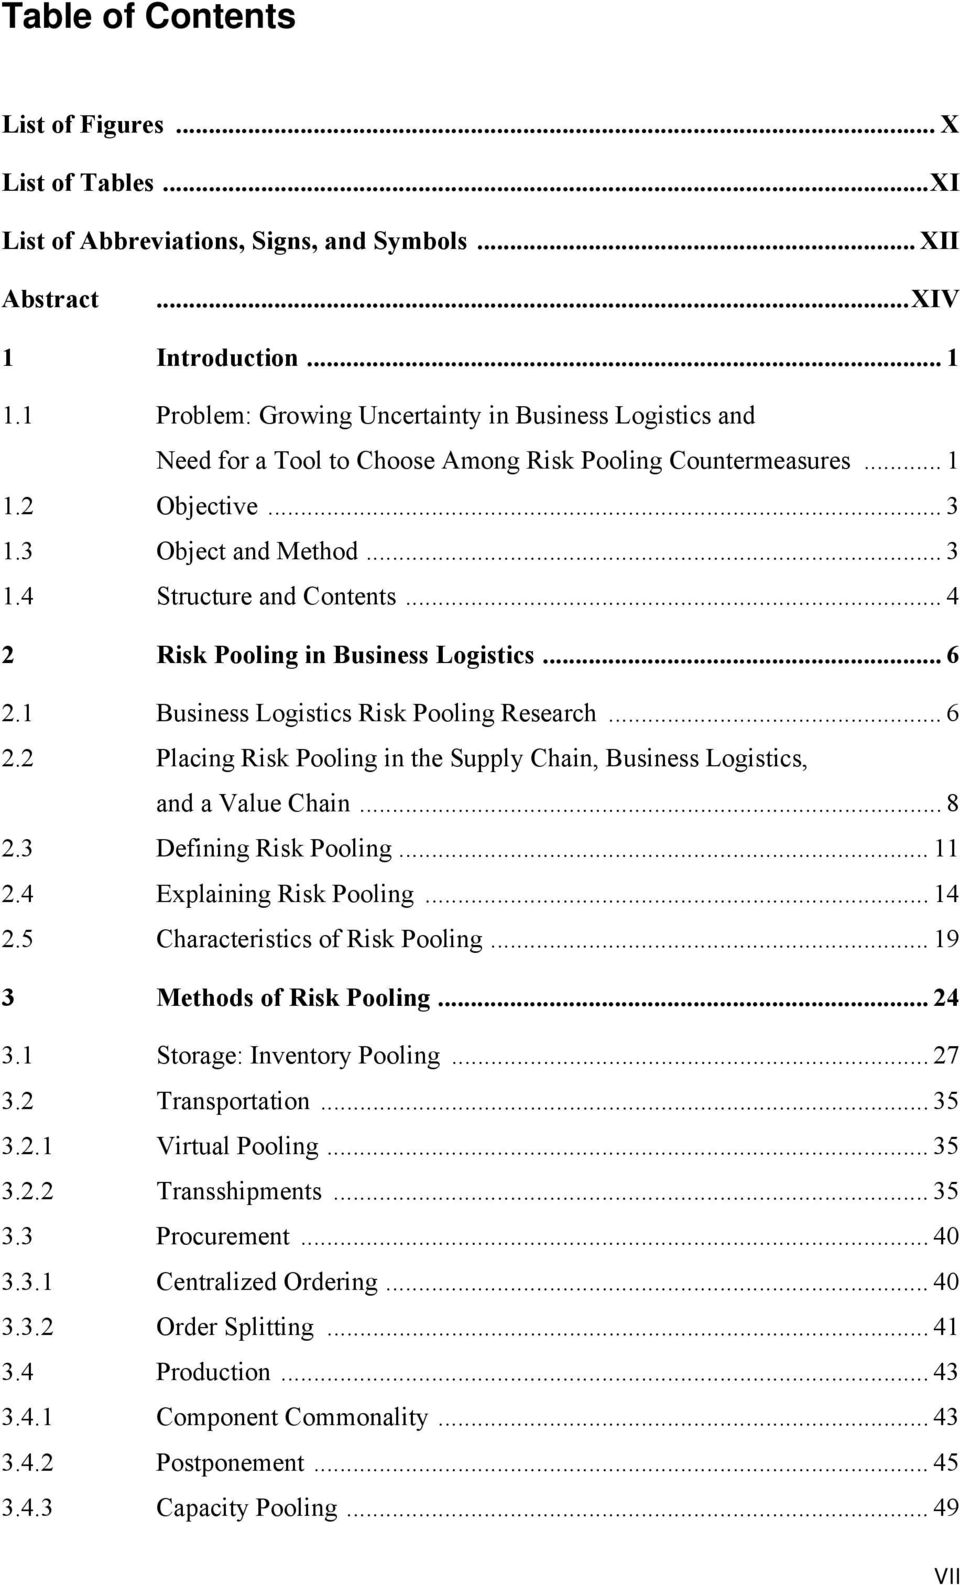 .. 4 2 Risk Pooling in Business Logistics... 6 2.1 Business Logistics Risk Pooling Research... 6 2.2 Placing Risk Pooling in the Supply Chain, Business Logistics, and a Value Chain... 8 2.